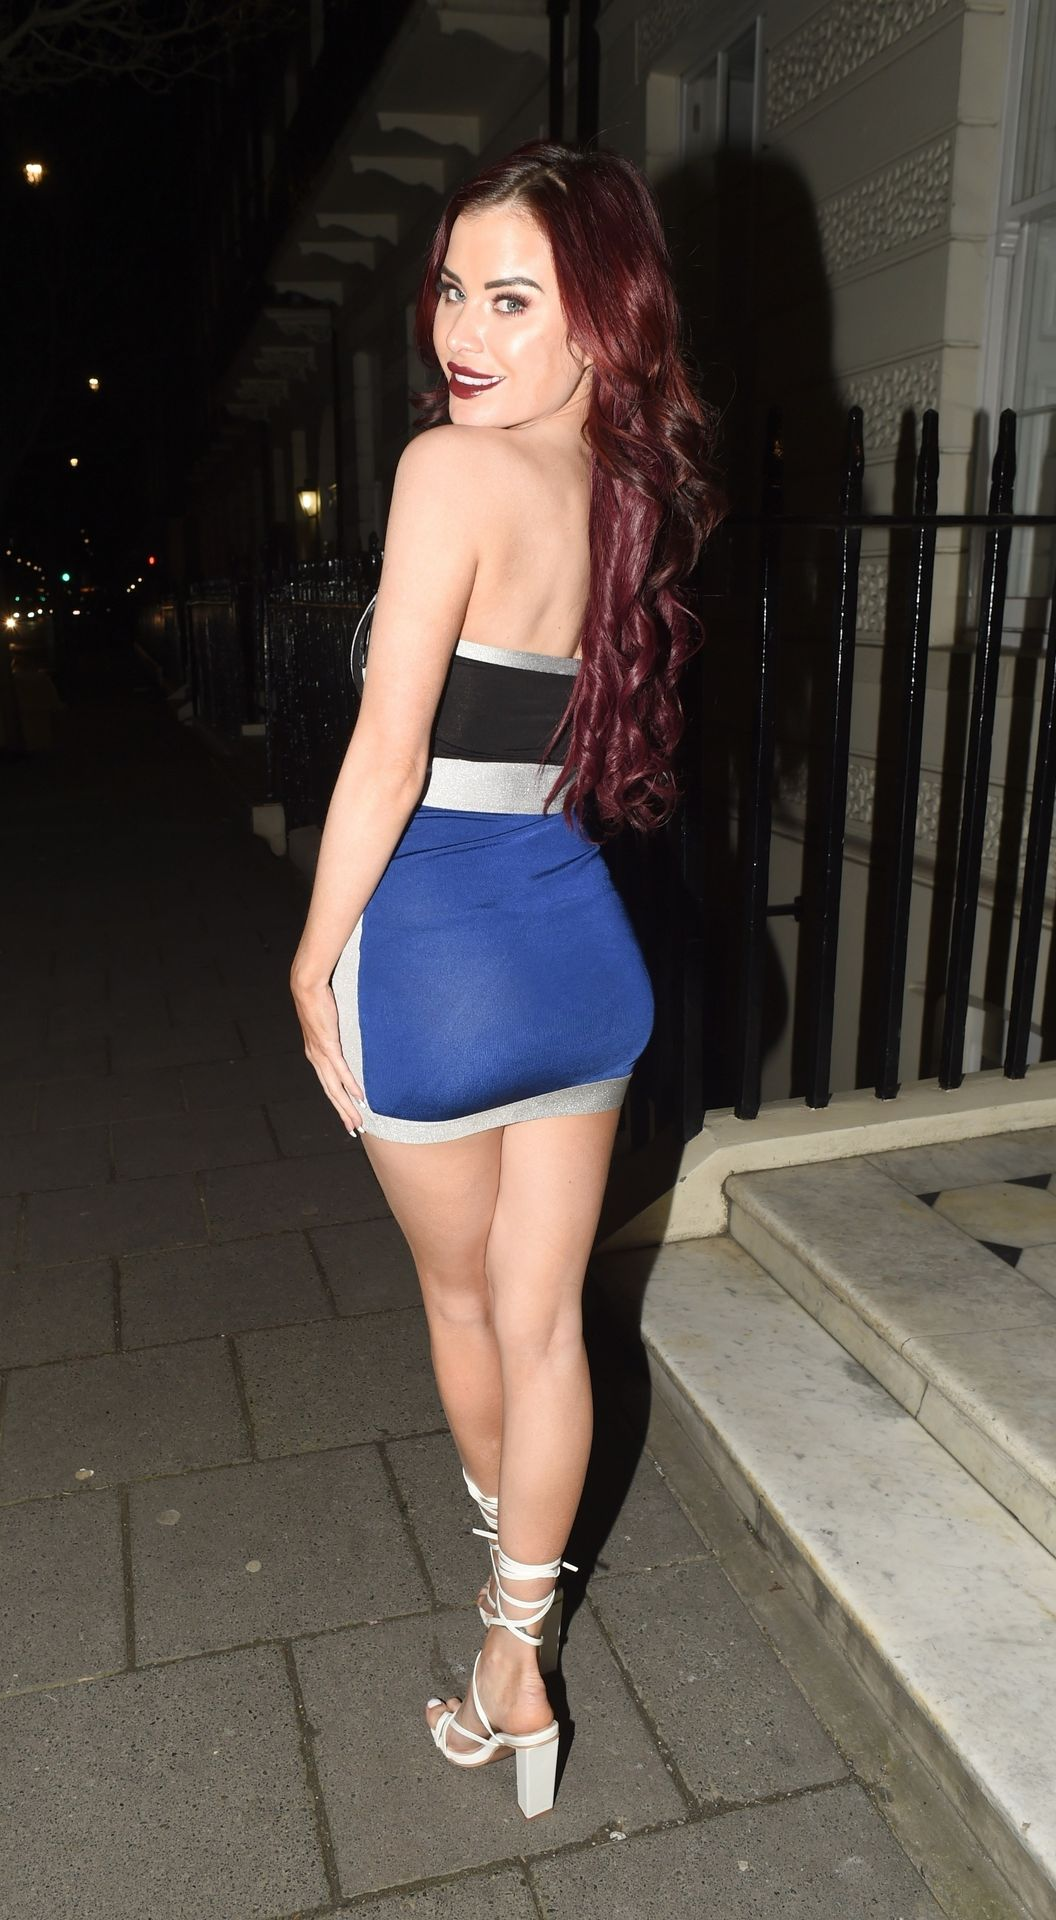 Carla Howe Getting Cheeky On A Cold Night Out In London 0009